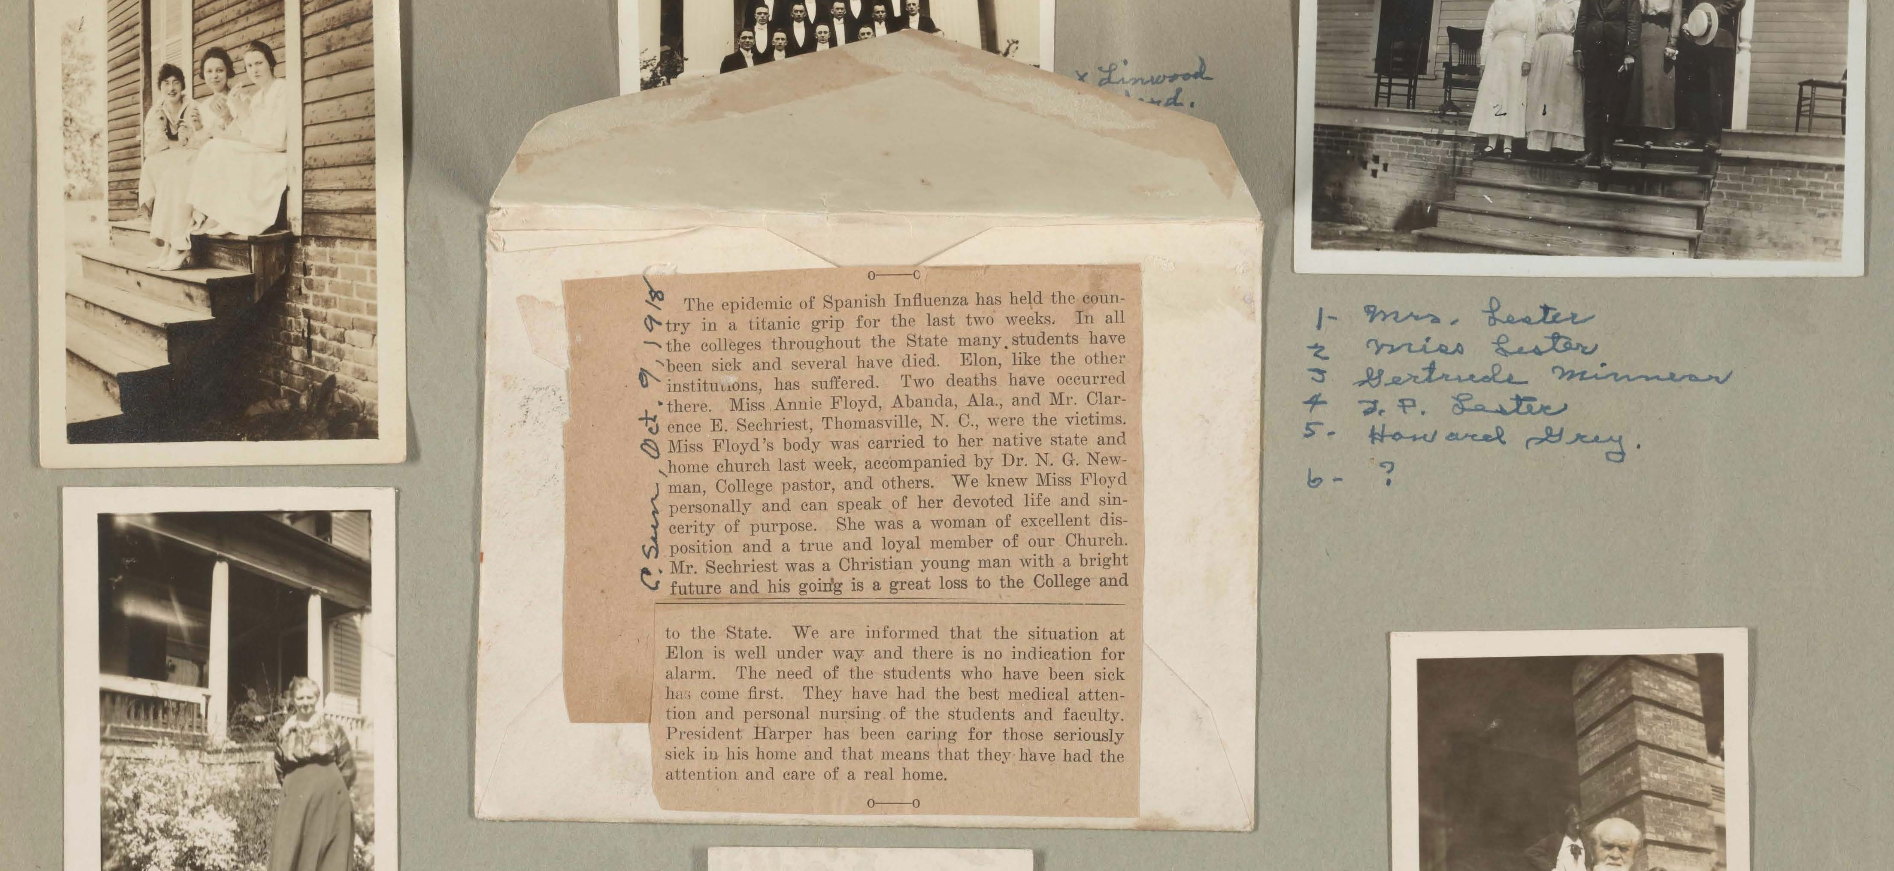 A section of Annie Gordon Floyd's scrapbook. She was a student at Elon College during the 1918 Influenza Pandemic and created a page in her scrapbook using a clipping from a newspaper describing influenza related deaths of classmates.